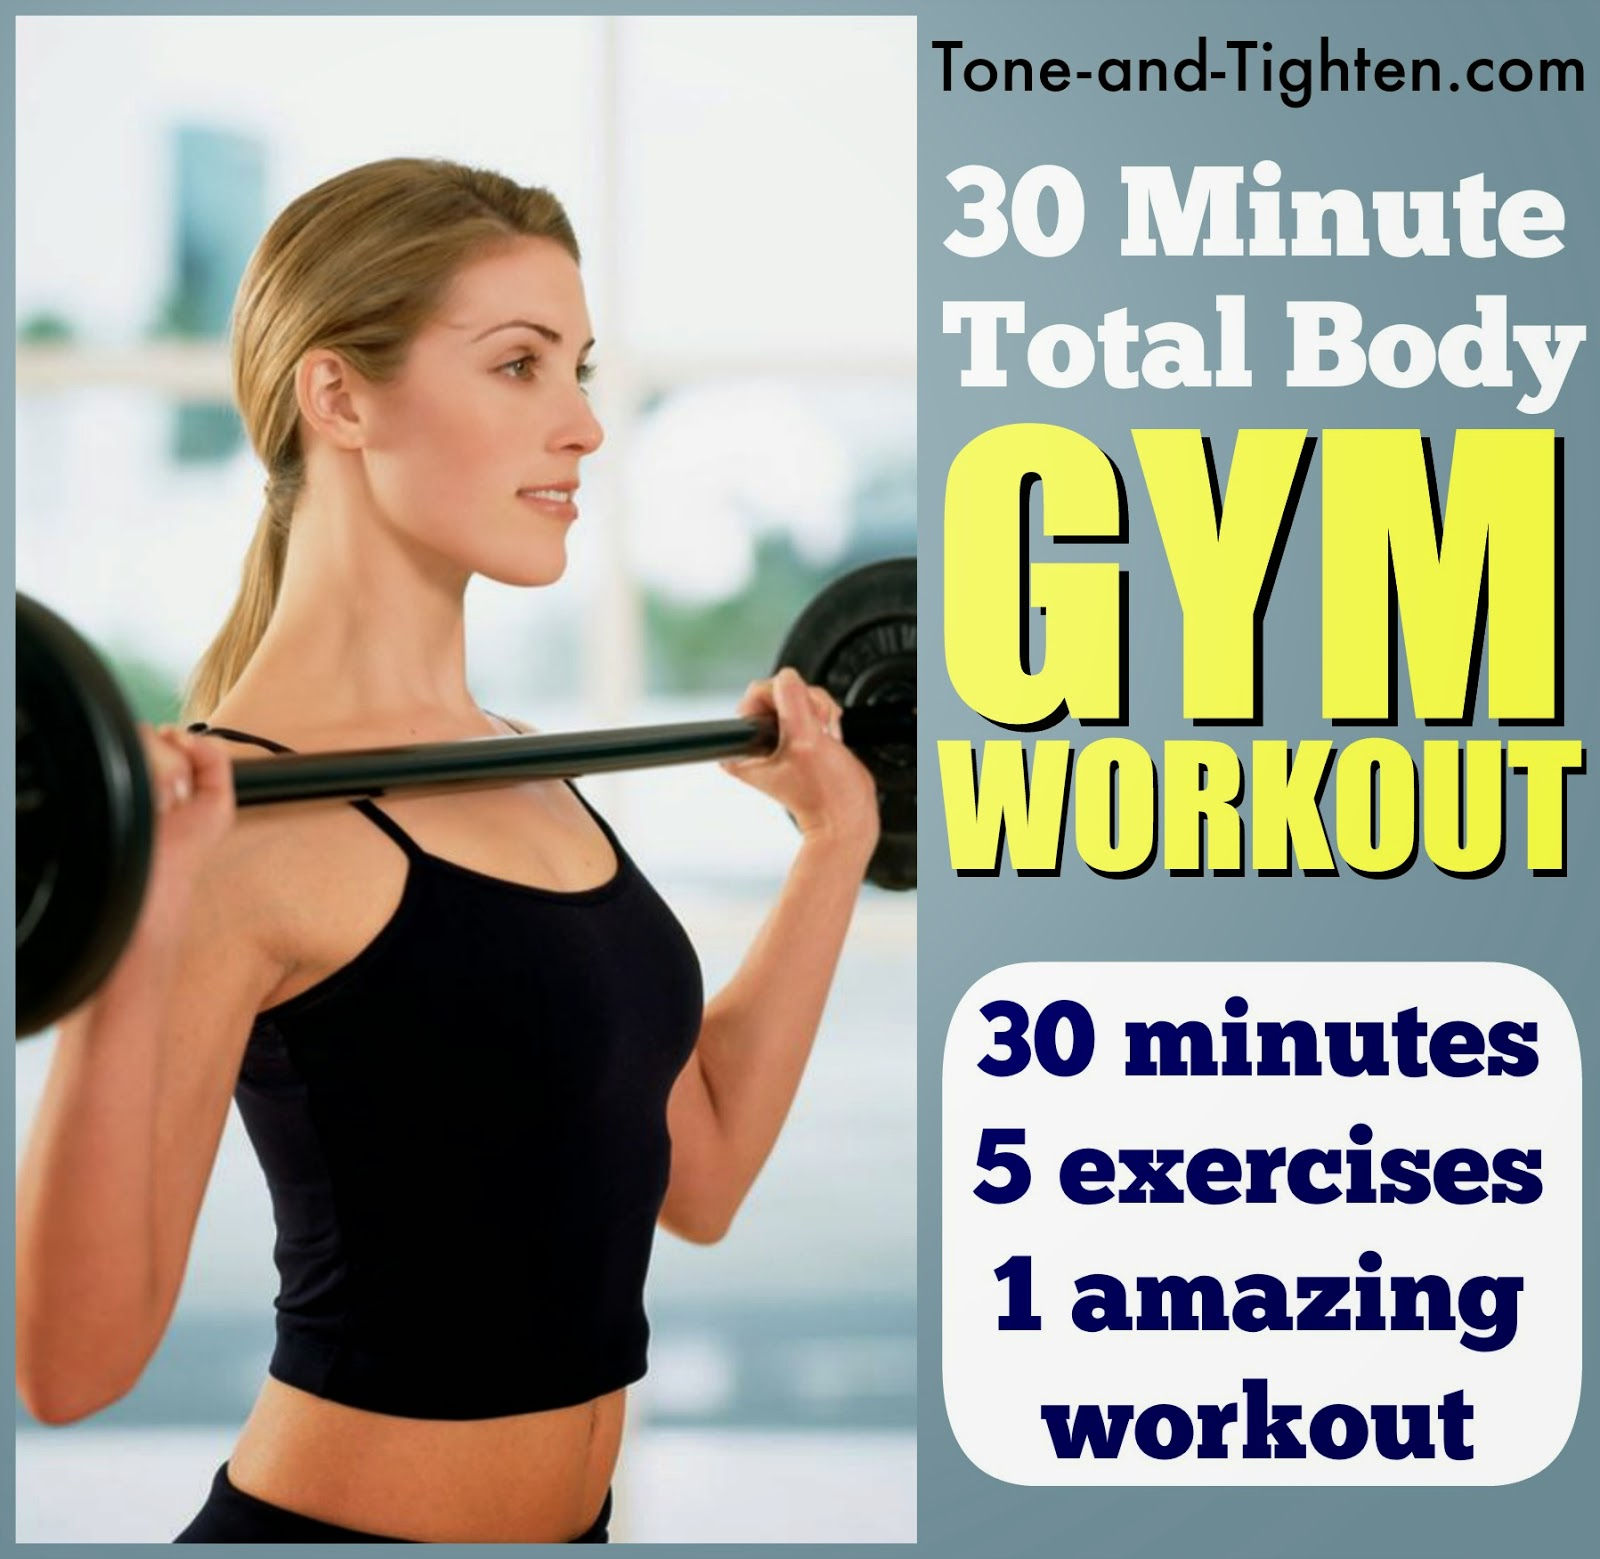 http://tone-and-tighten.com/2014/04/30-minute-total-body-gym-workout.html